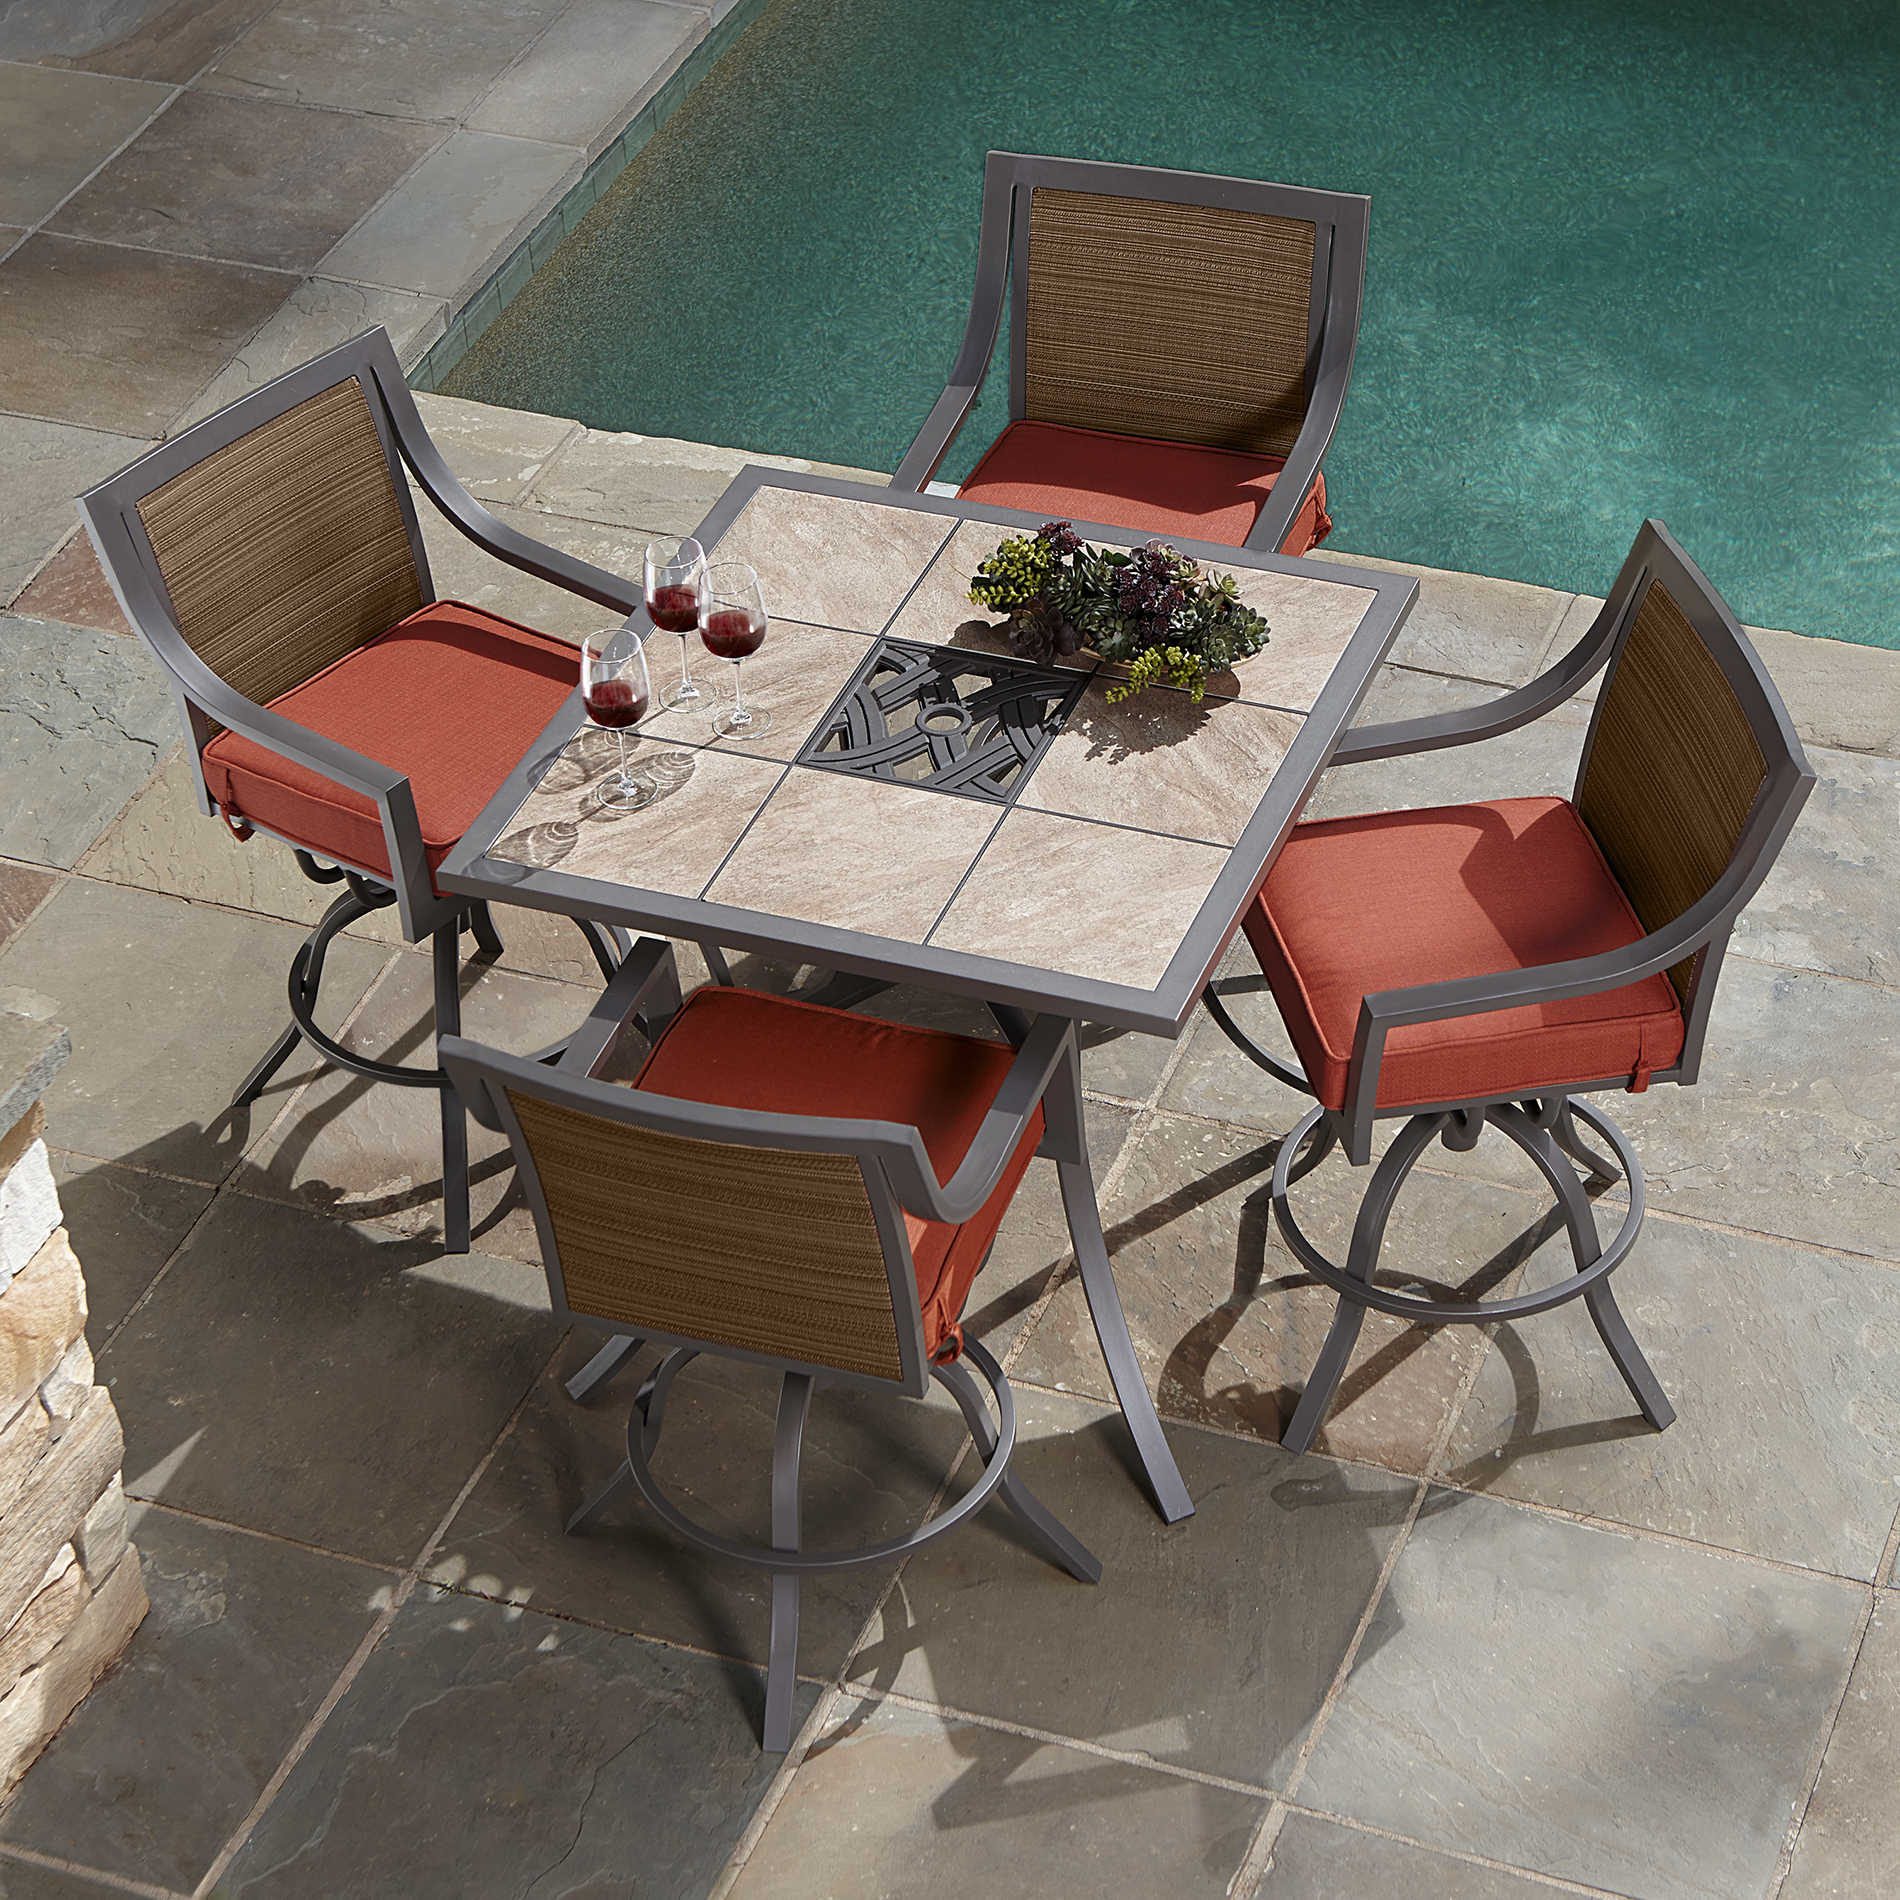 high top patio table and chairs phil teds lobster chair spin prod 1232839412 hei333 andwid333 andop sharpen1